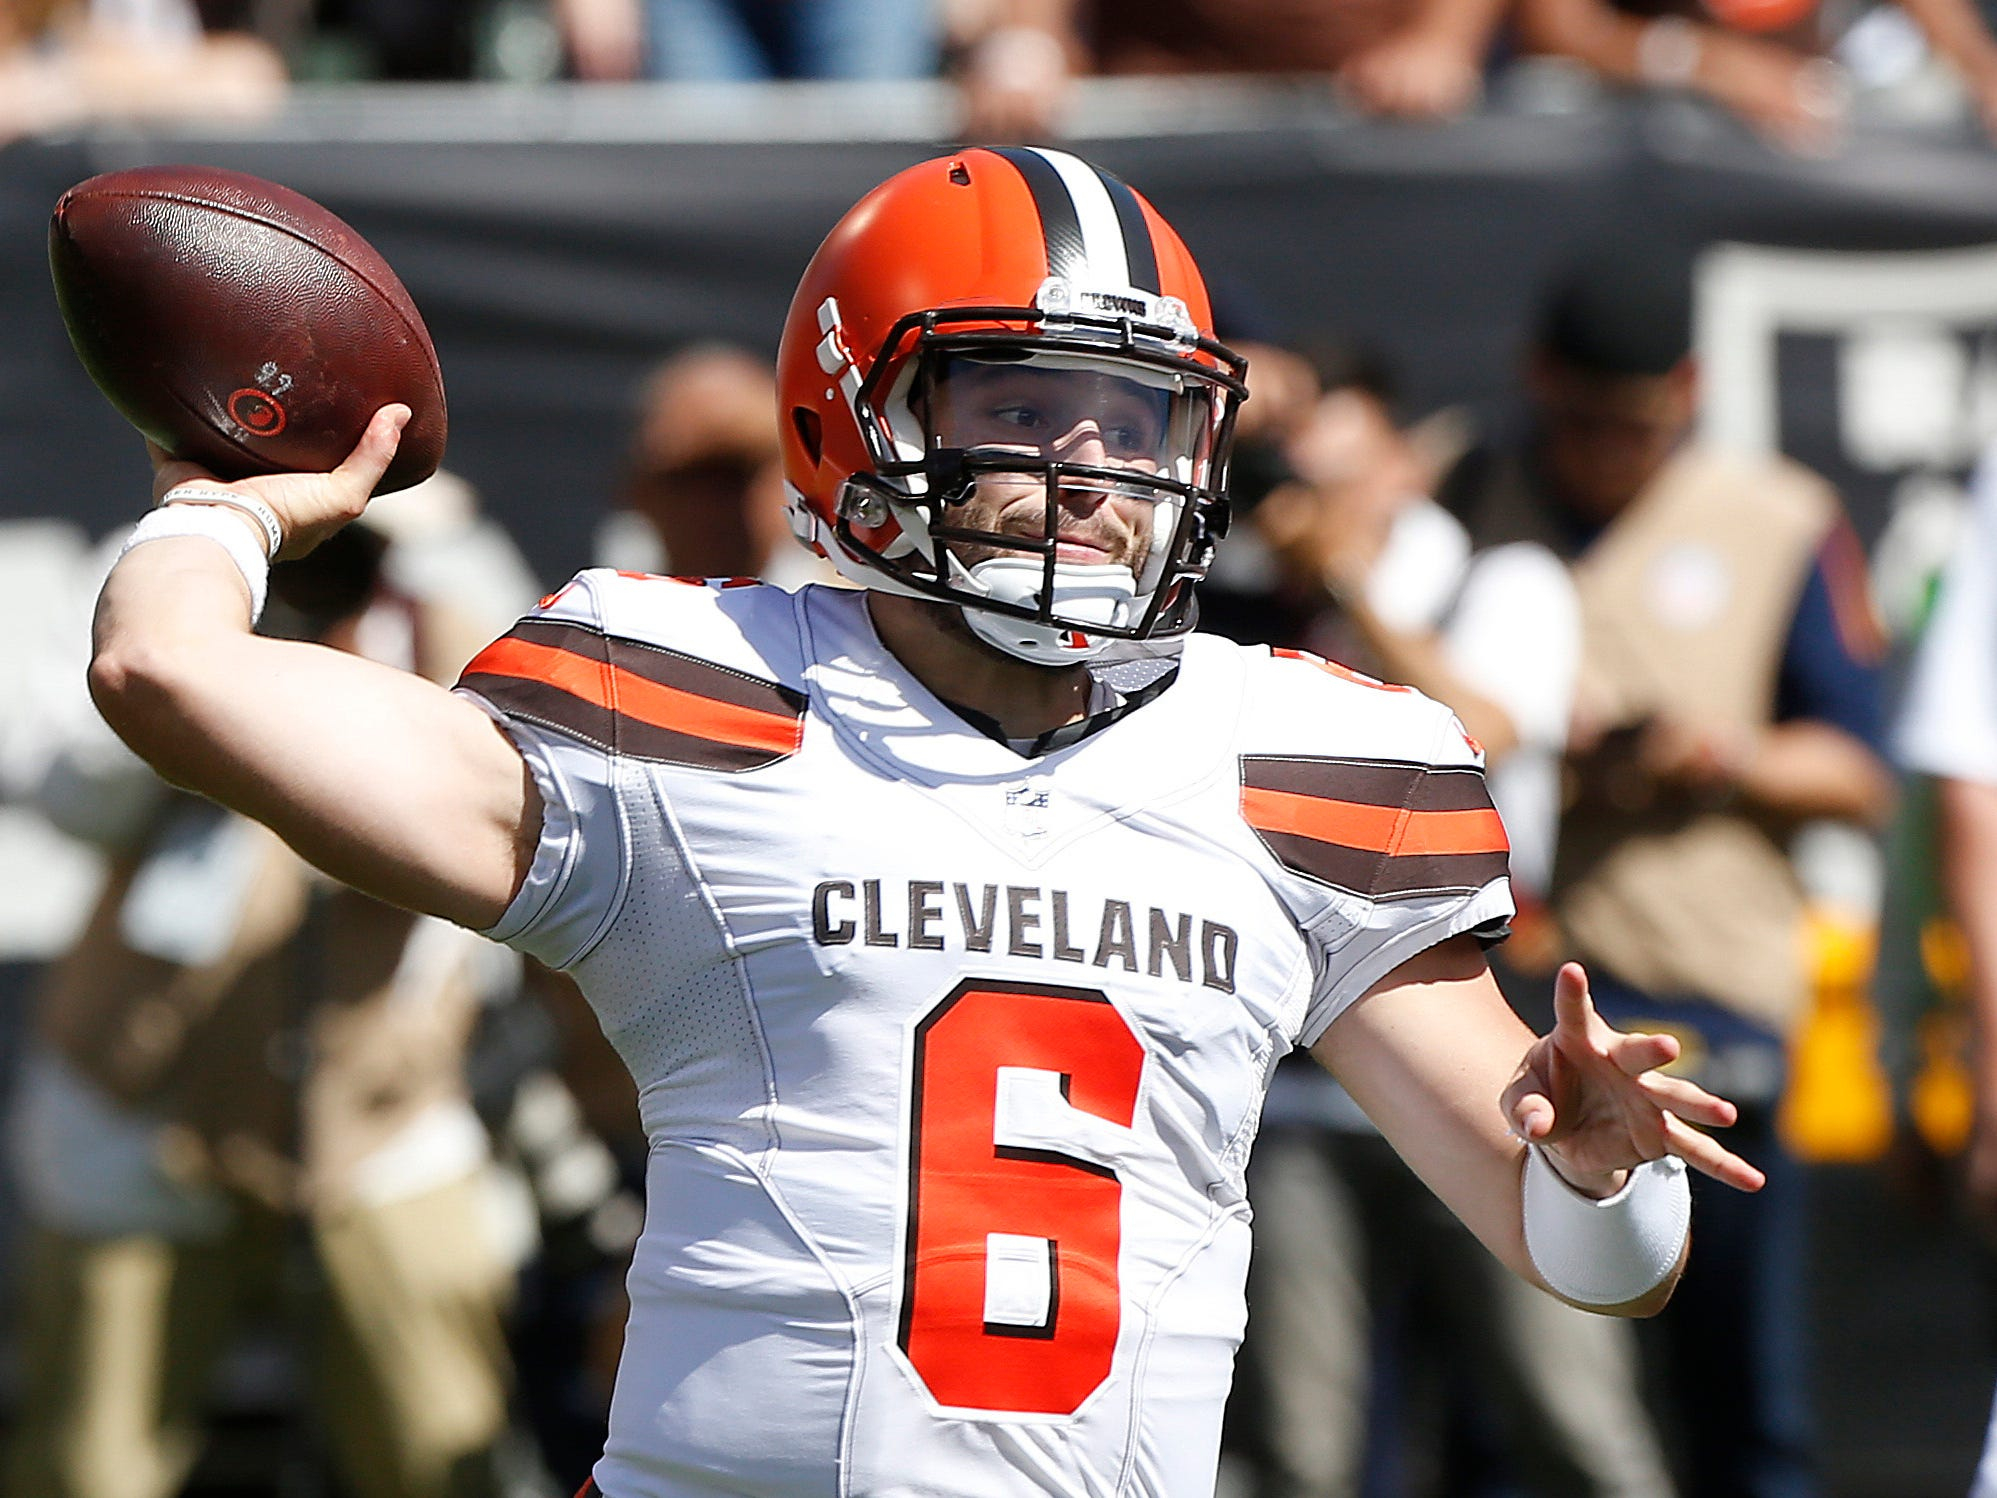 24. Browns (14): Anti-Tyrod — Baker Mayfield sparked offense to season-high 42 points, 487 yards. Anti-Tyrod — Baker Mayfield committed four turnovers.